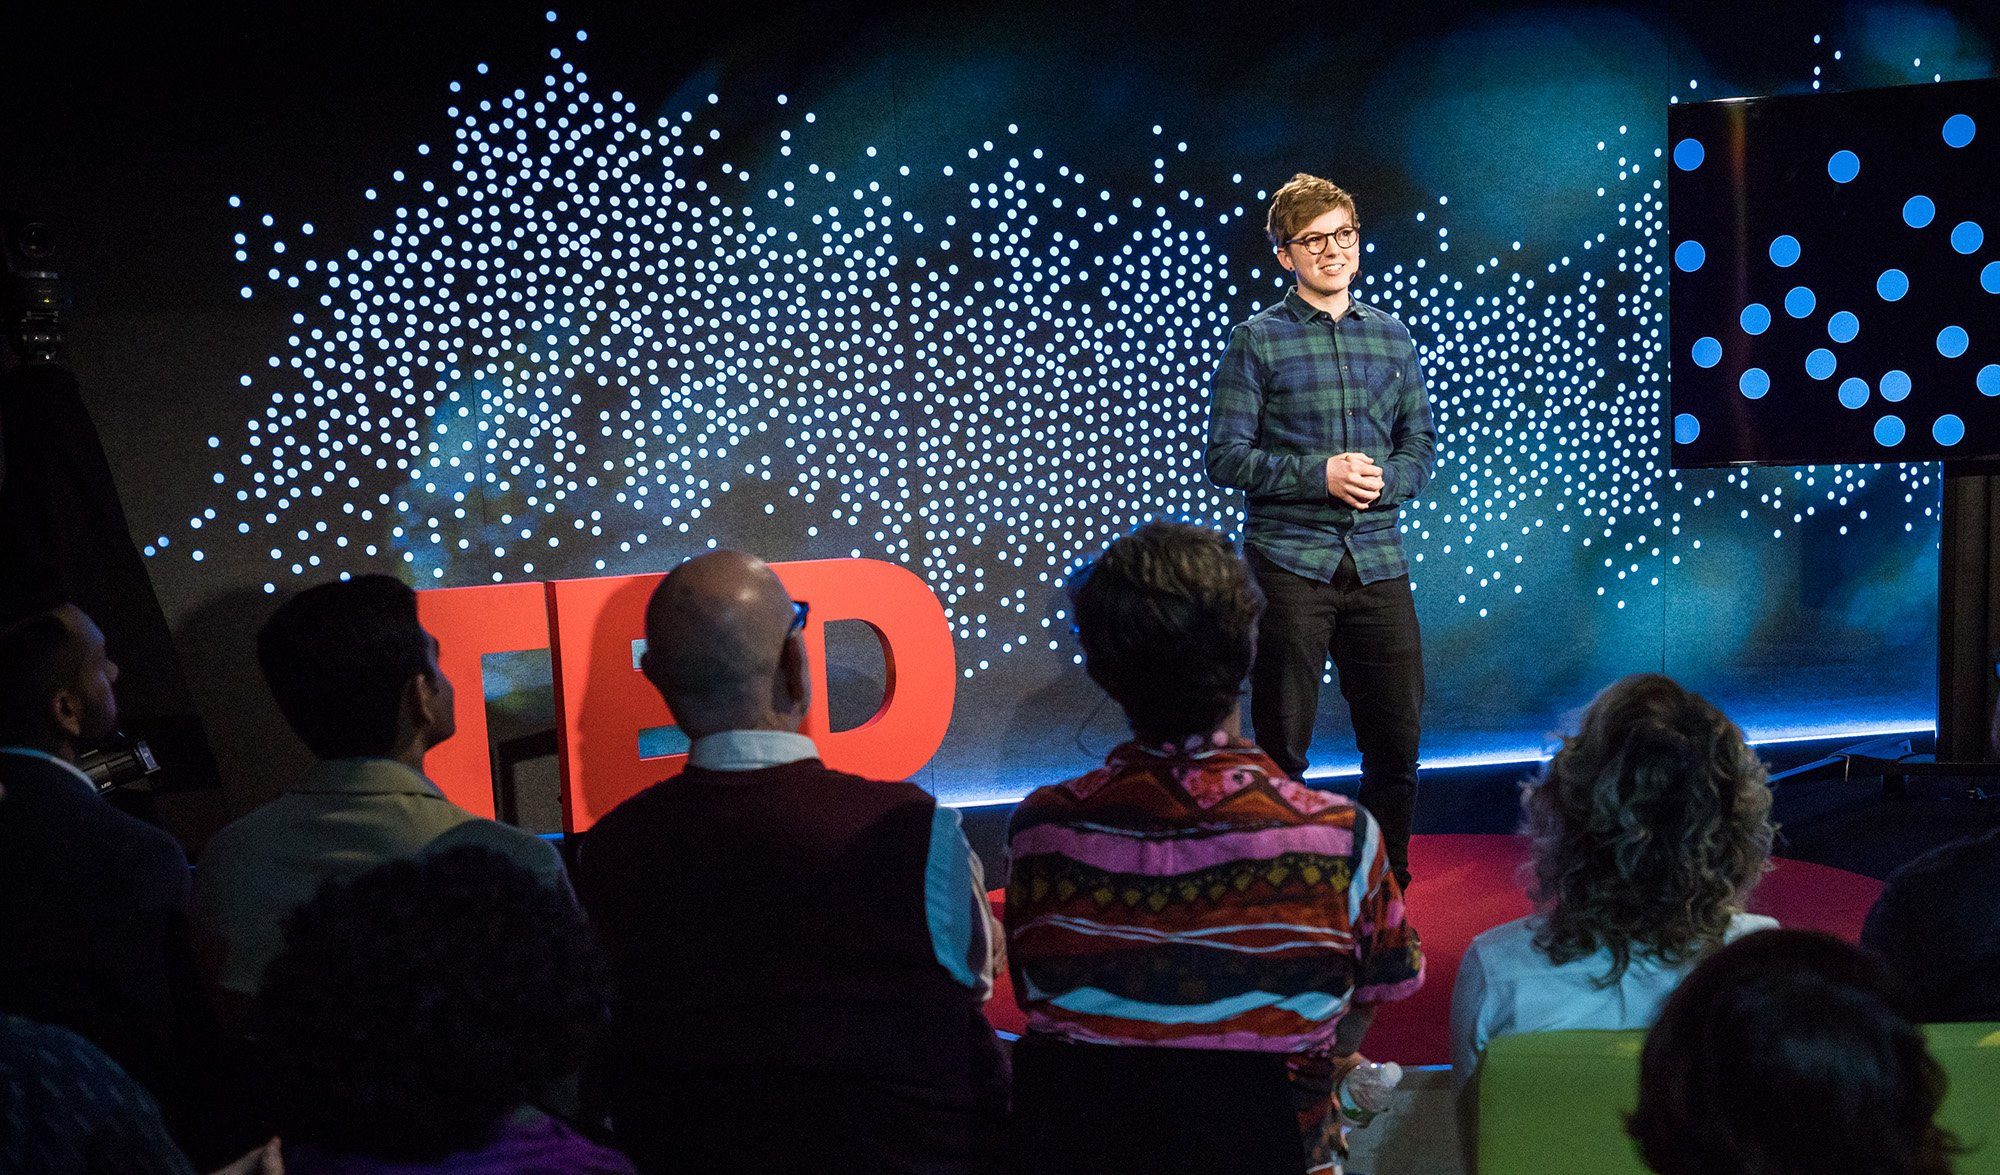 a picture of Jackson Bird on the TedTalk Stage. He stands in front of a crowd, wearing a blue and green flannel top and jeans.